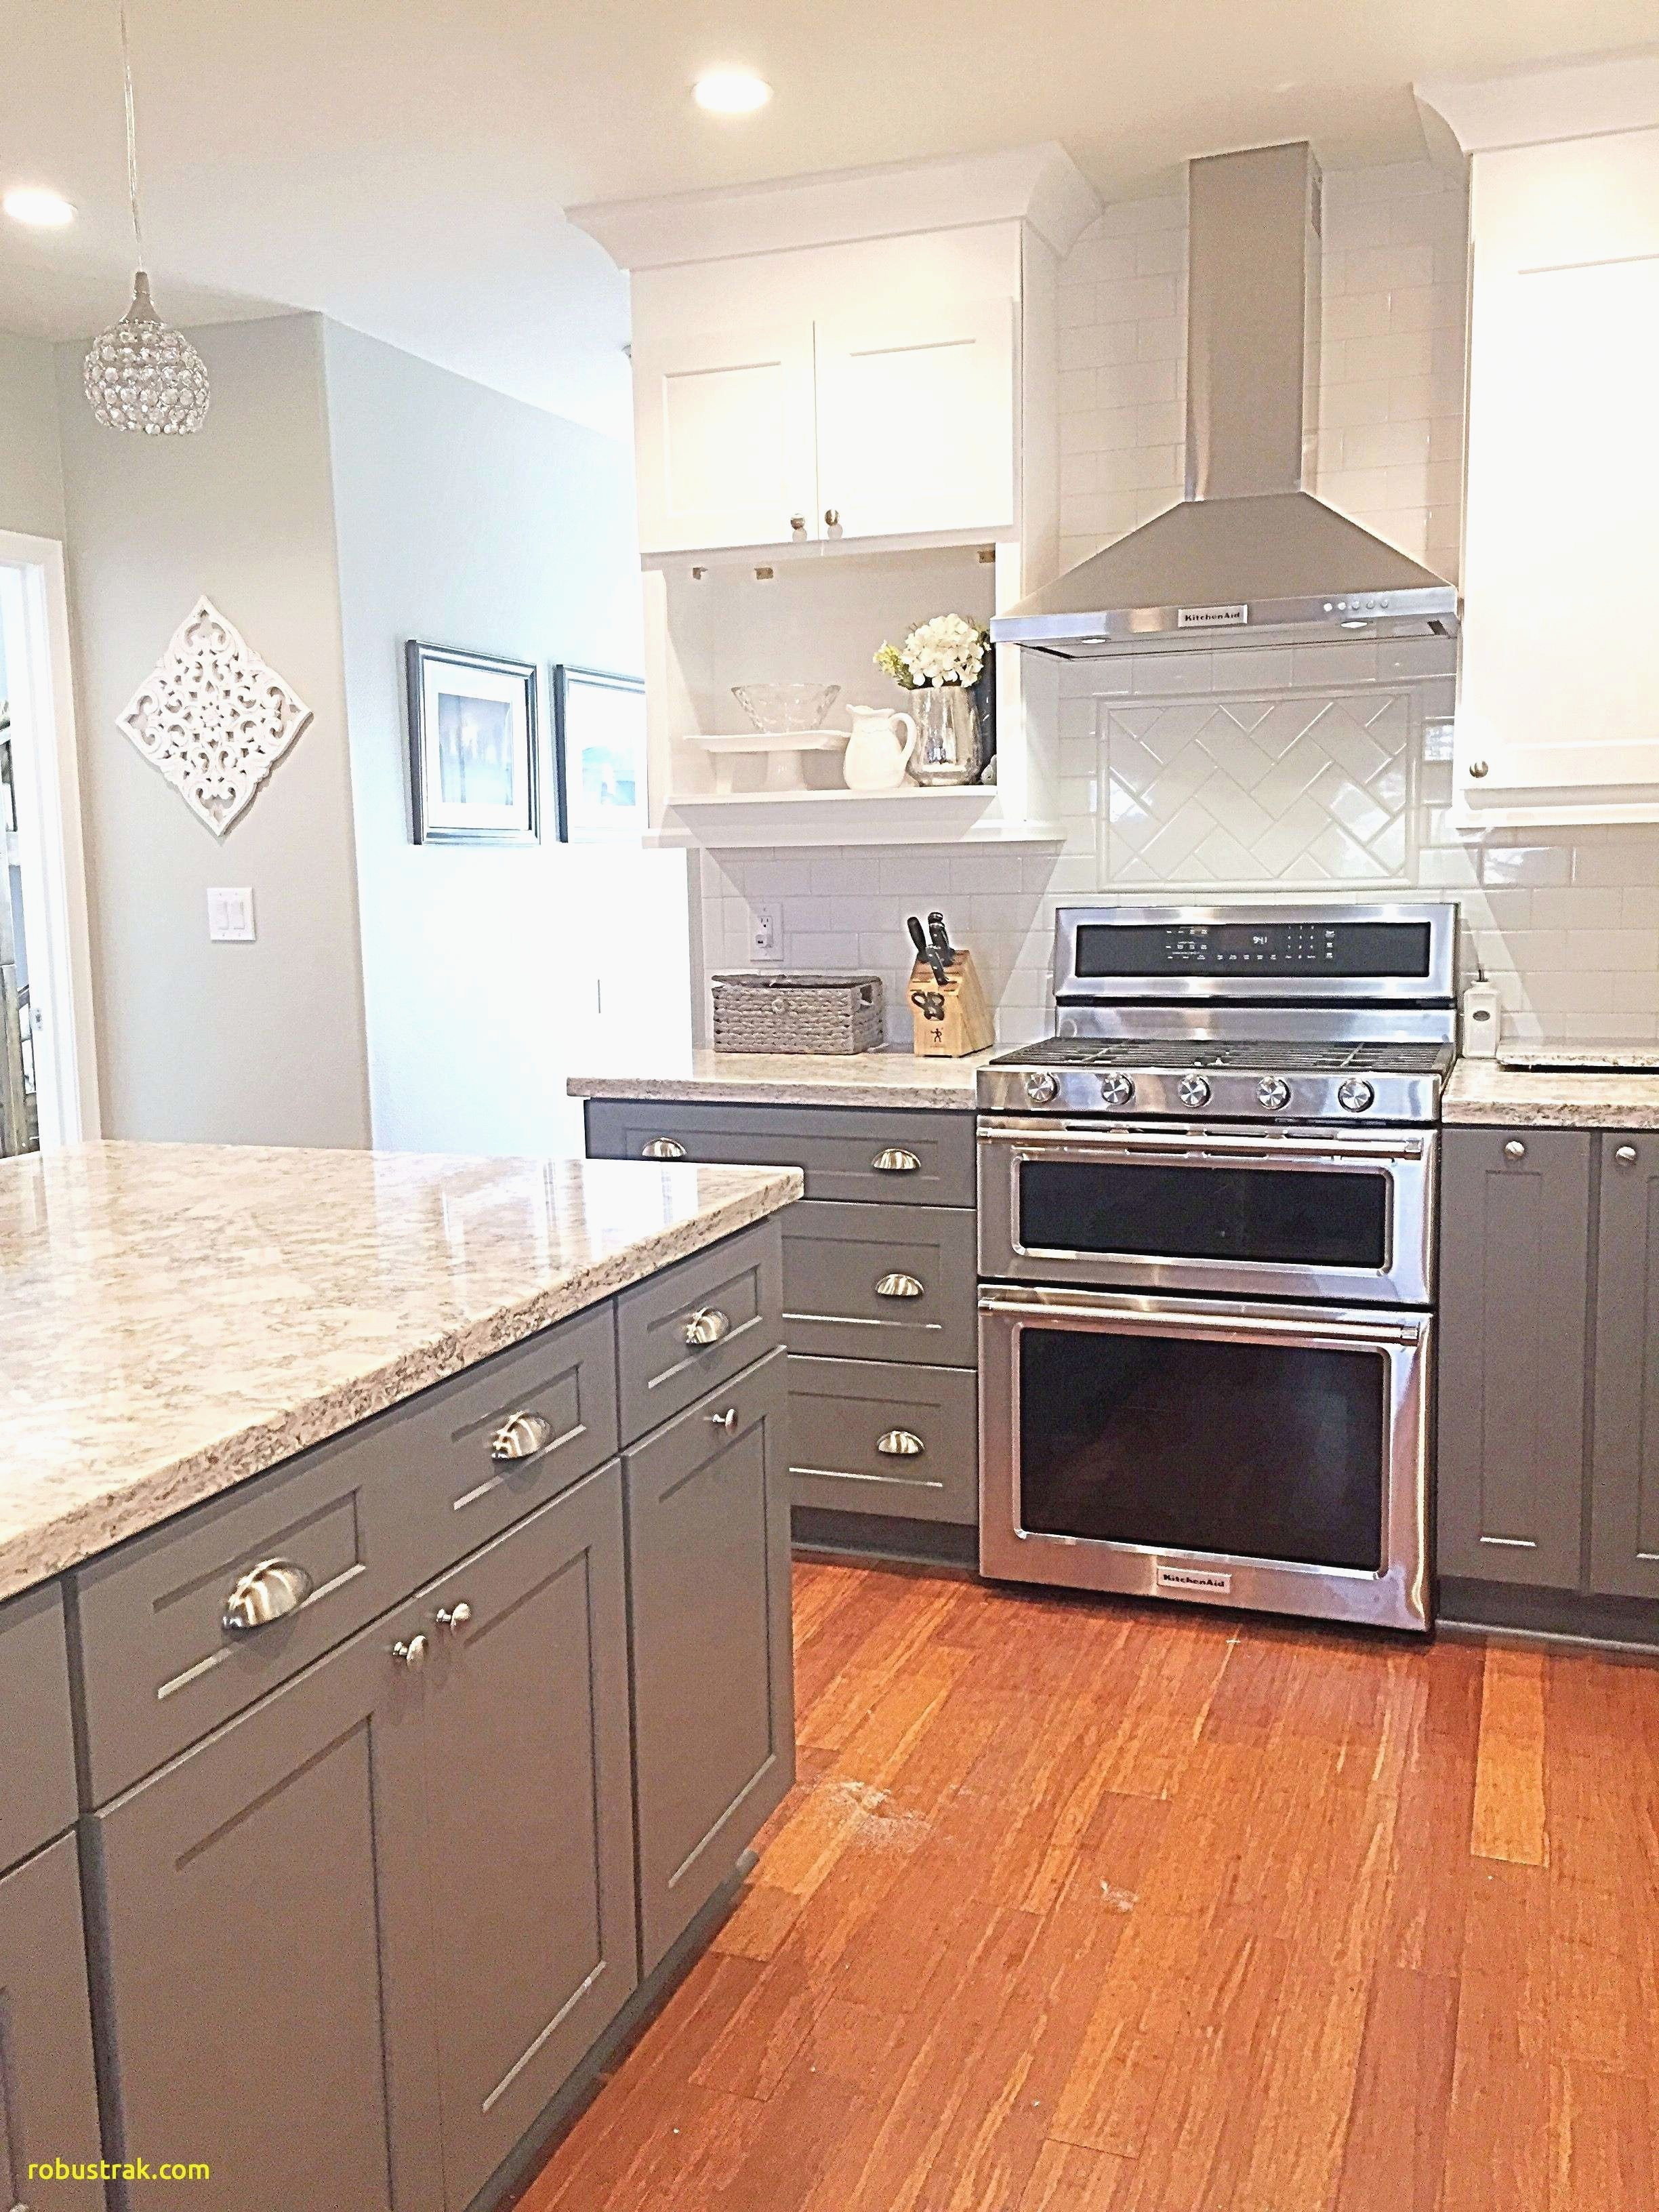 How Much Would It Cost to Lay Hardwood Floor Of 14 New Average Cost for Hardwood Floors Stock Dizpos Com with Regard to Average Cost for Hardwood Floors Inspirational Great Popular How Much Does It Cost to Have Kitchen